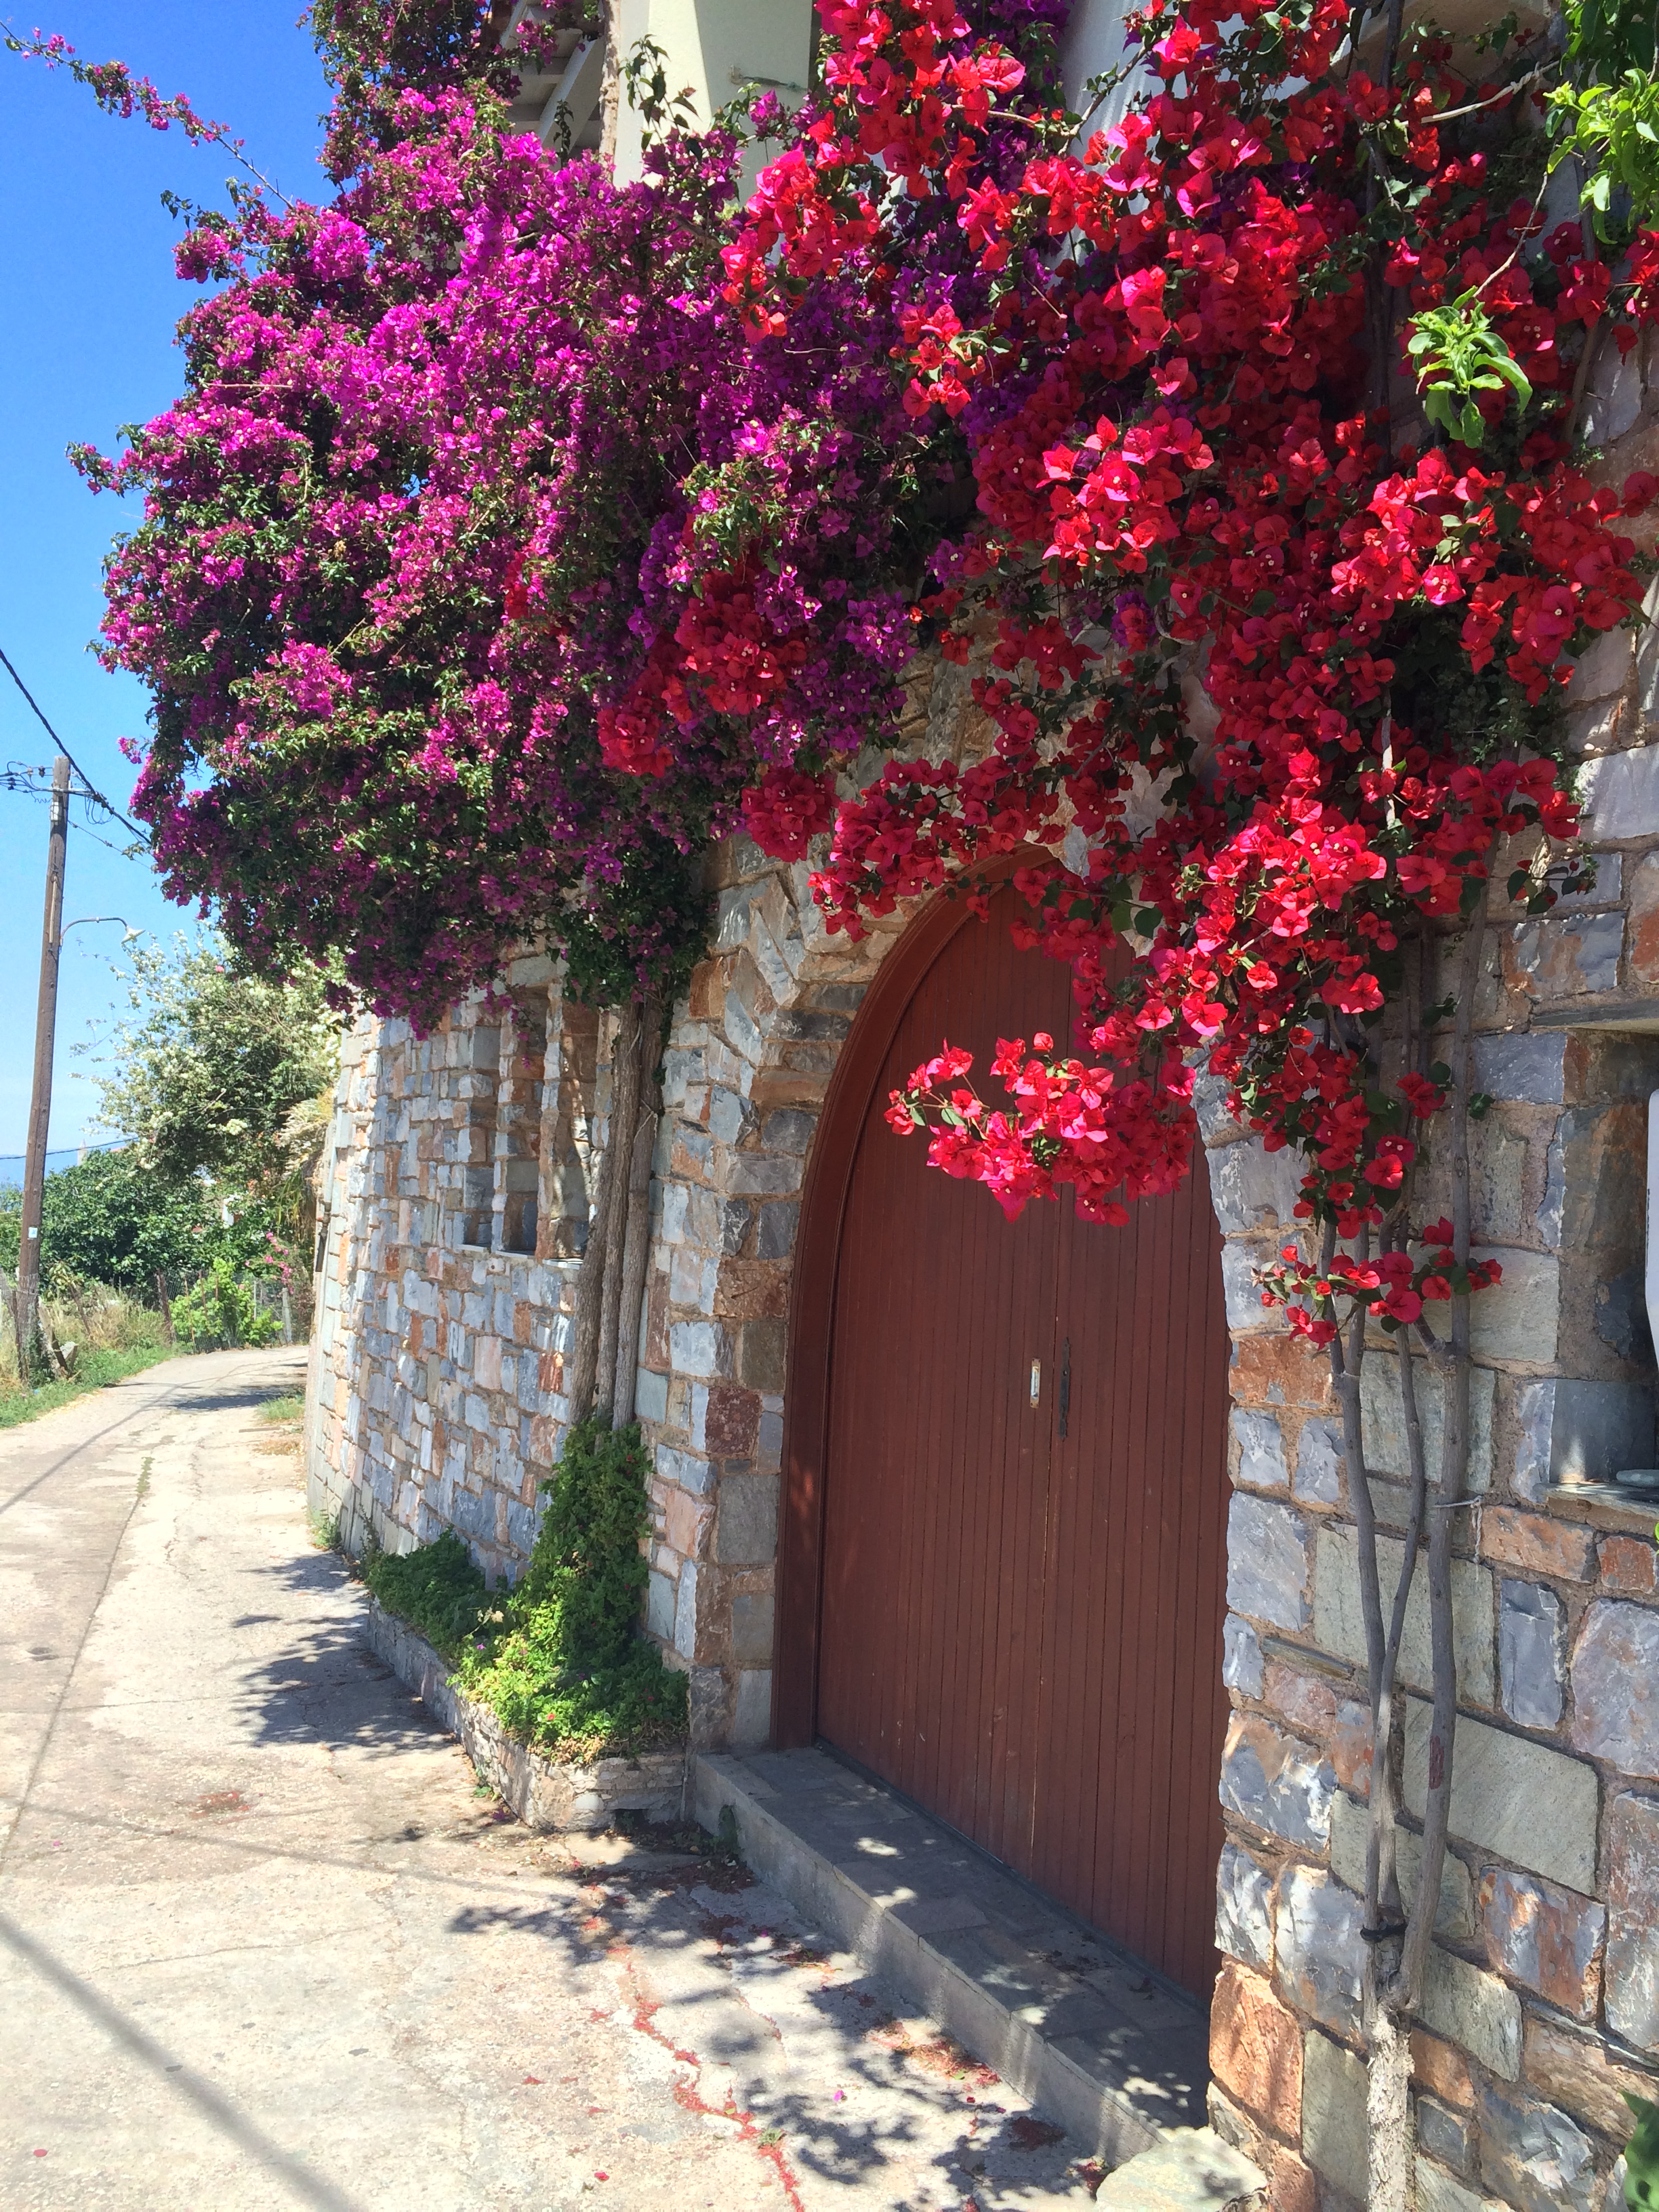 Beautiful flowers in the village of Glossa, where Eleni's House is situated.